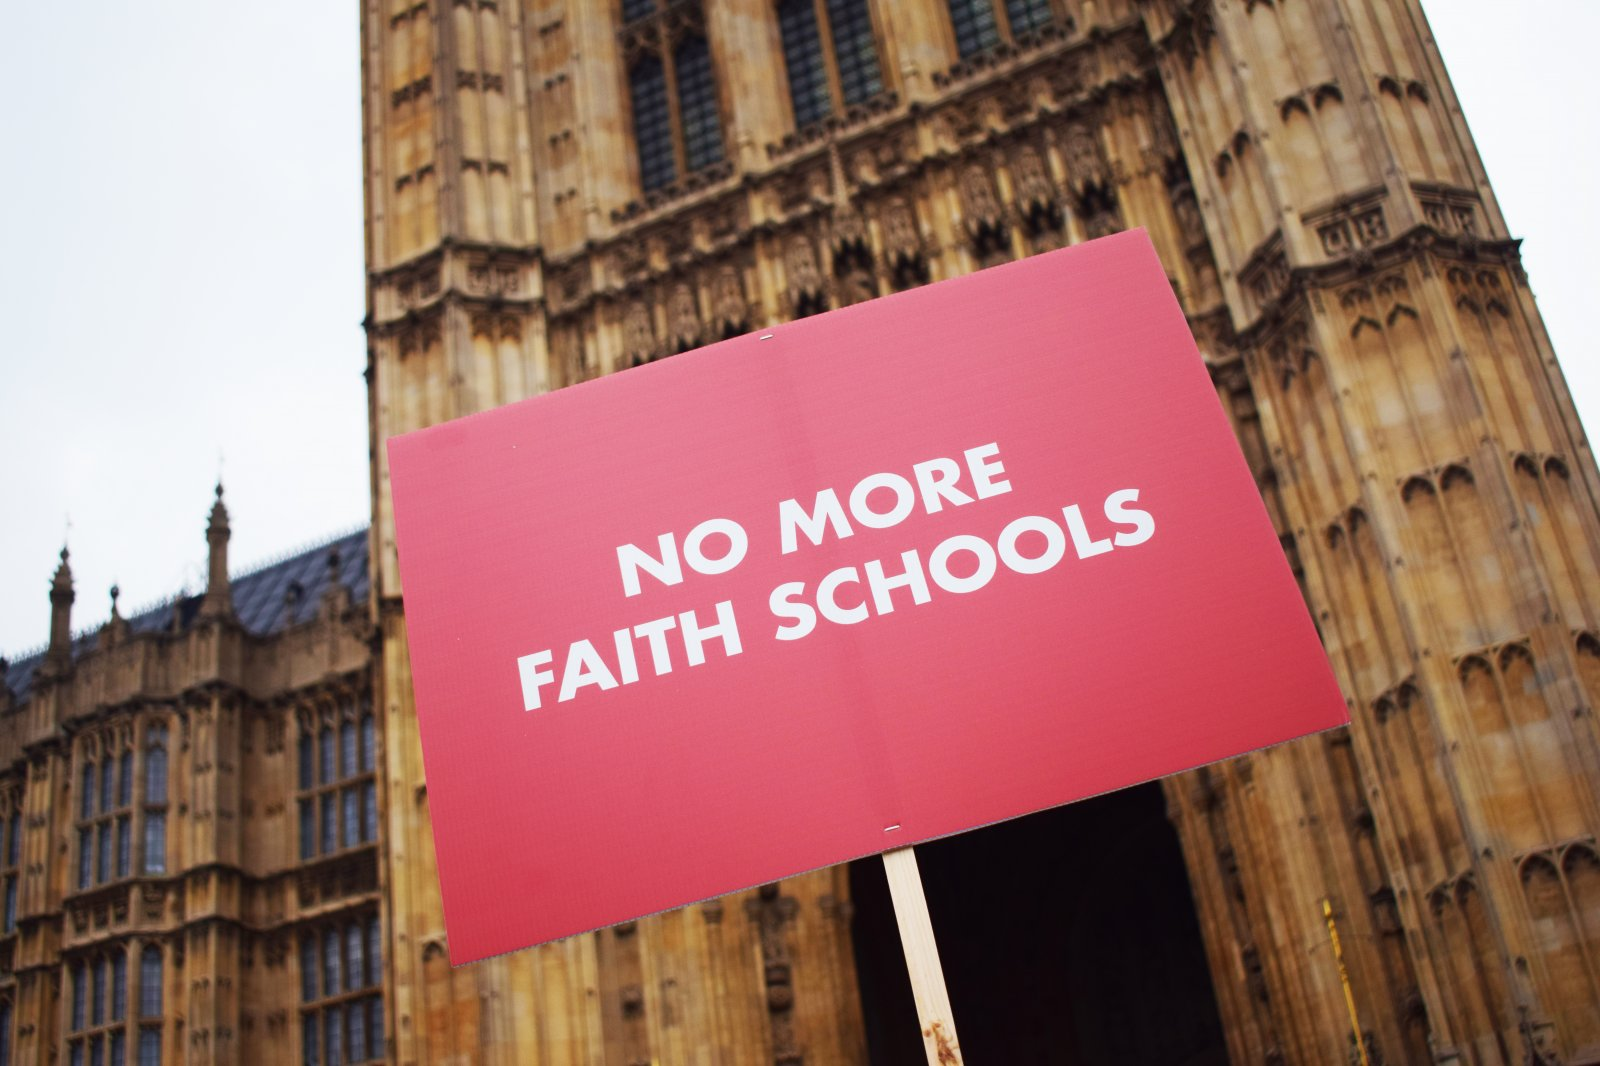 No More Faith Schools placard